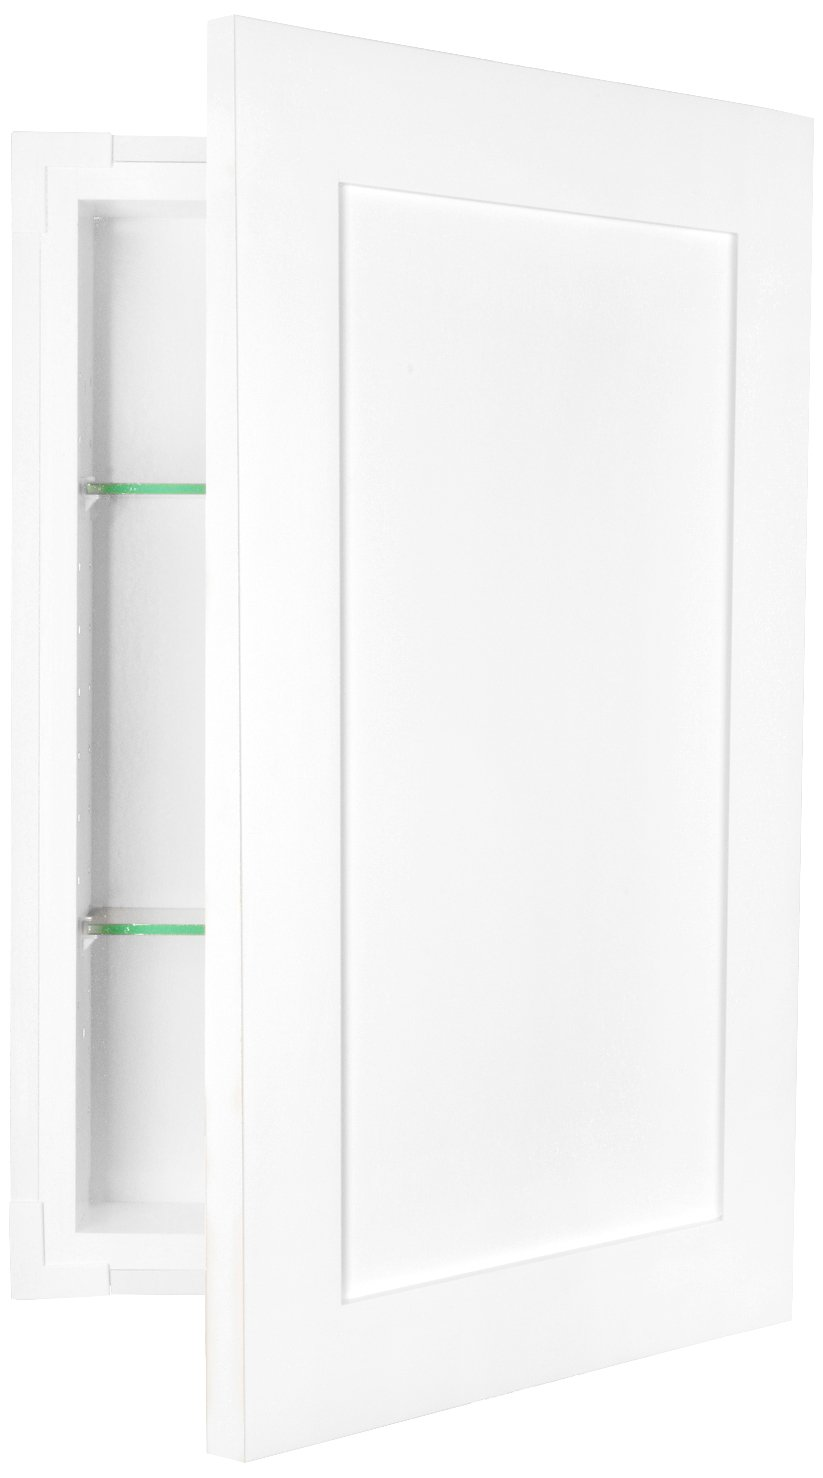 WG Wood Products FR-224-White Shaker Style Frameless Recessed In Wall Bathroom Medicine Storage Cabinet-Multiple Finishes, White Enamel/Glossy